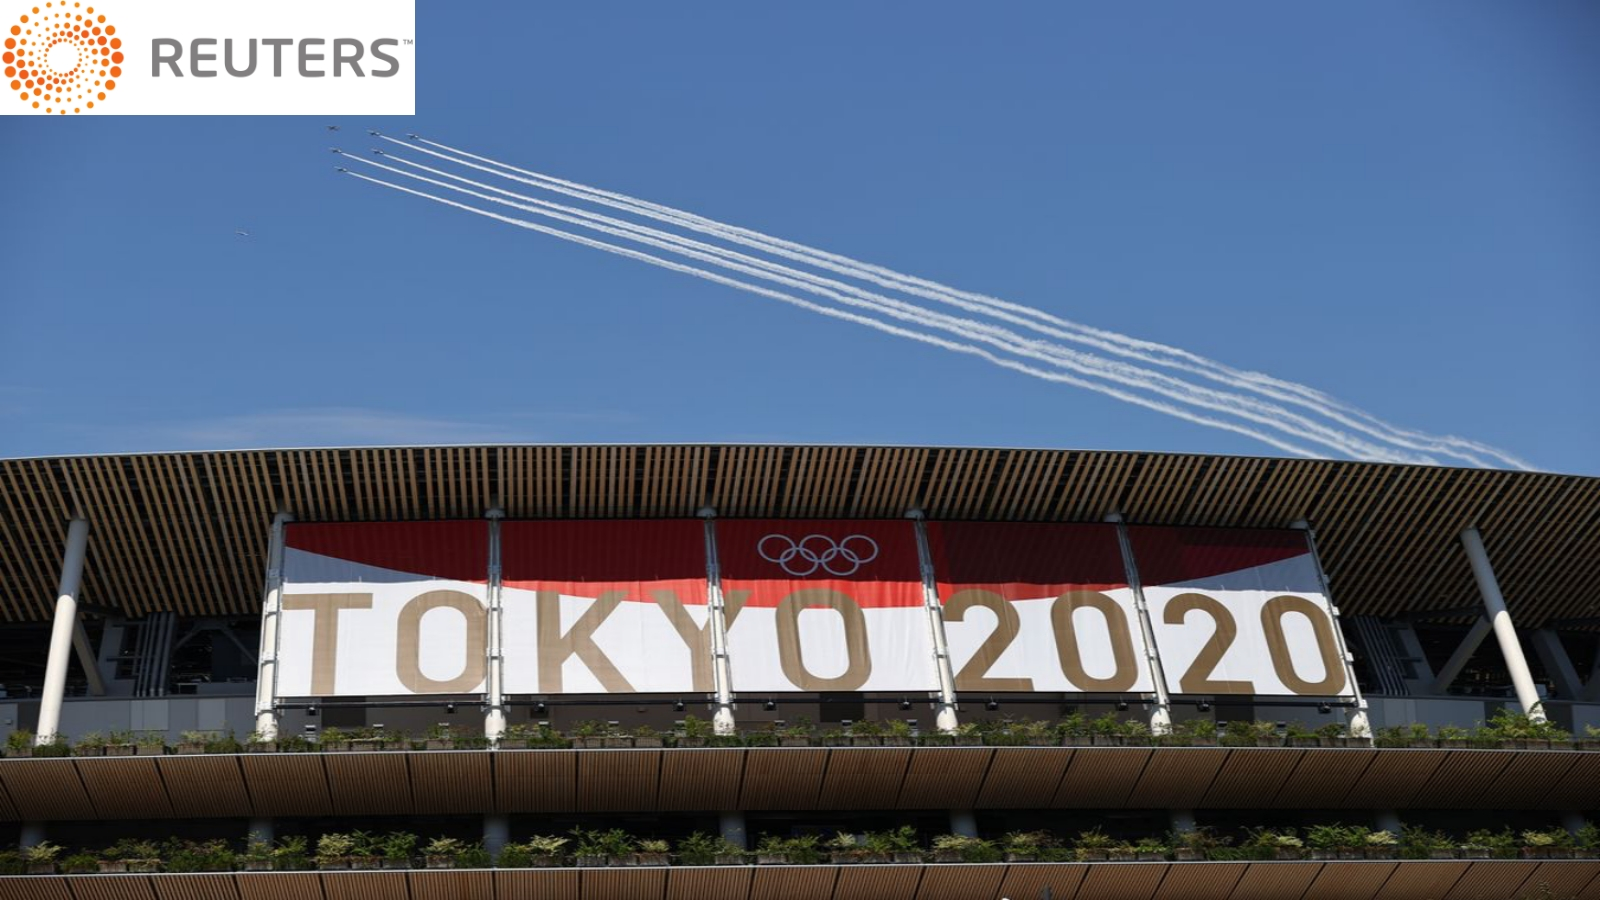 Tokyo 2020 opening ceremony will be 'sobering' show, not flashy